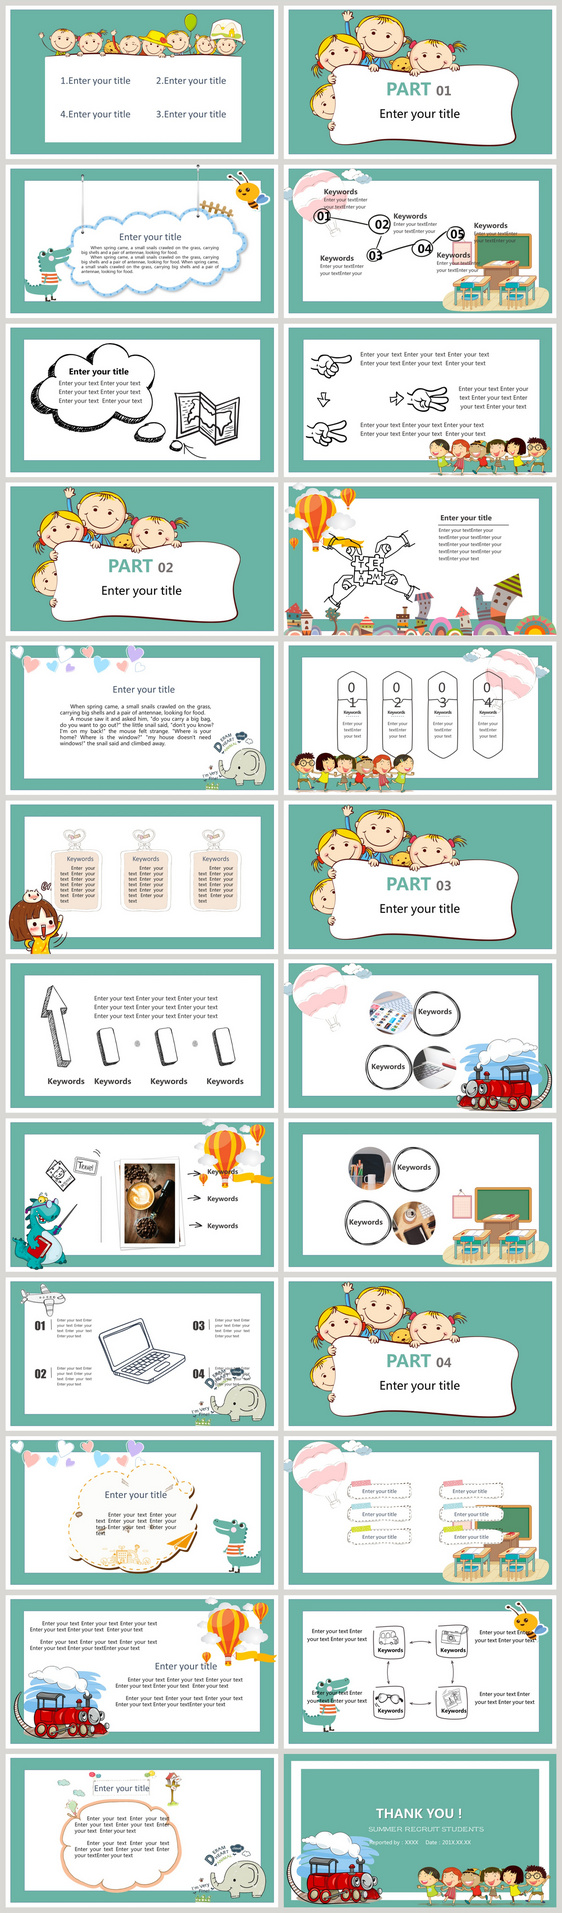 Report Ppt Template For Children S Education Summer Camp Activit